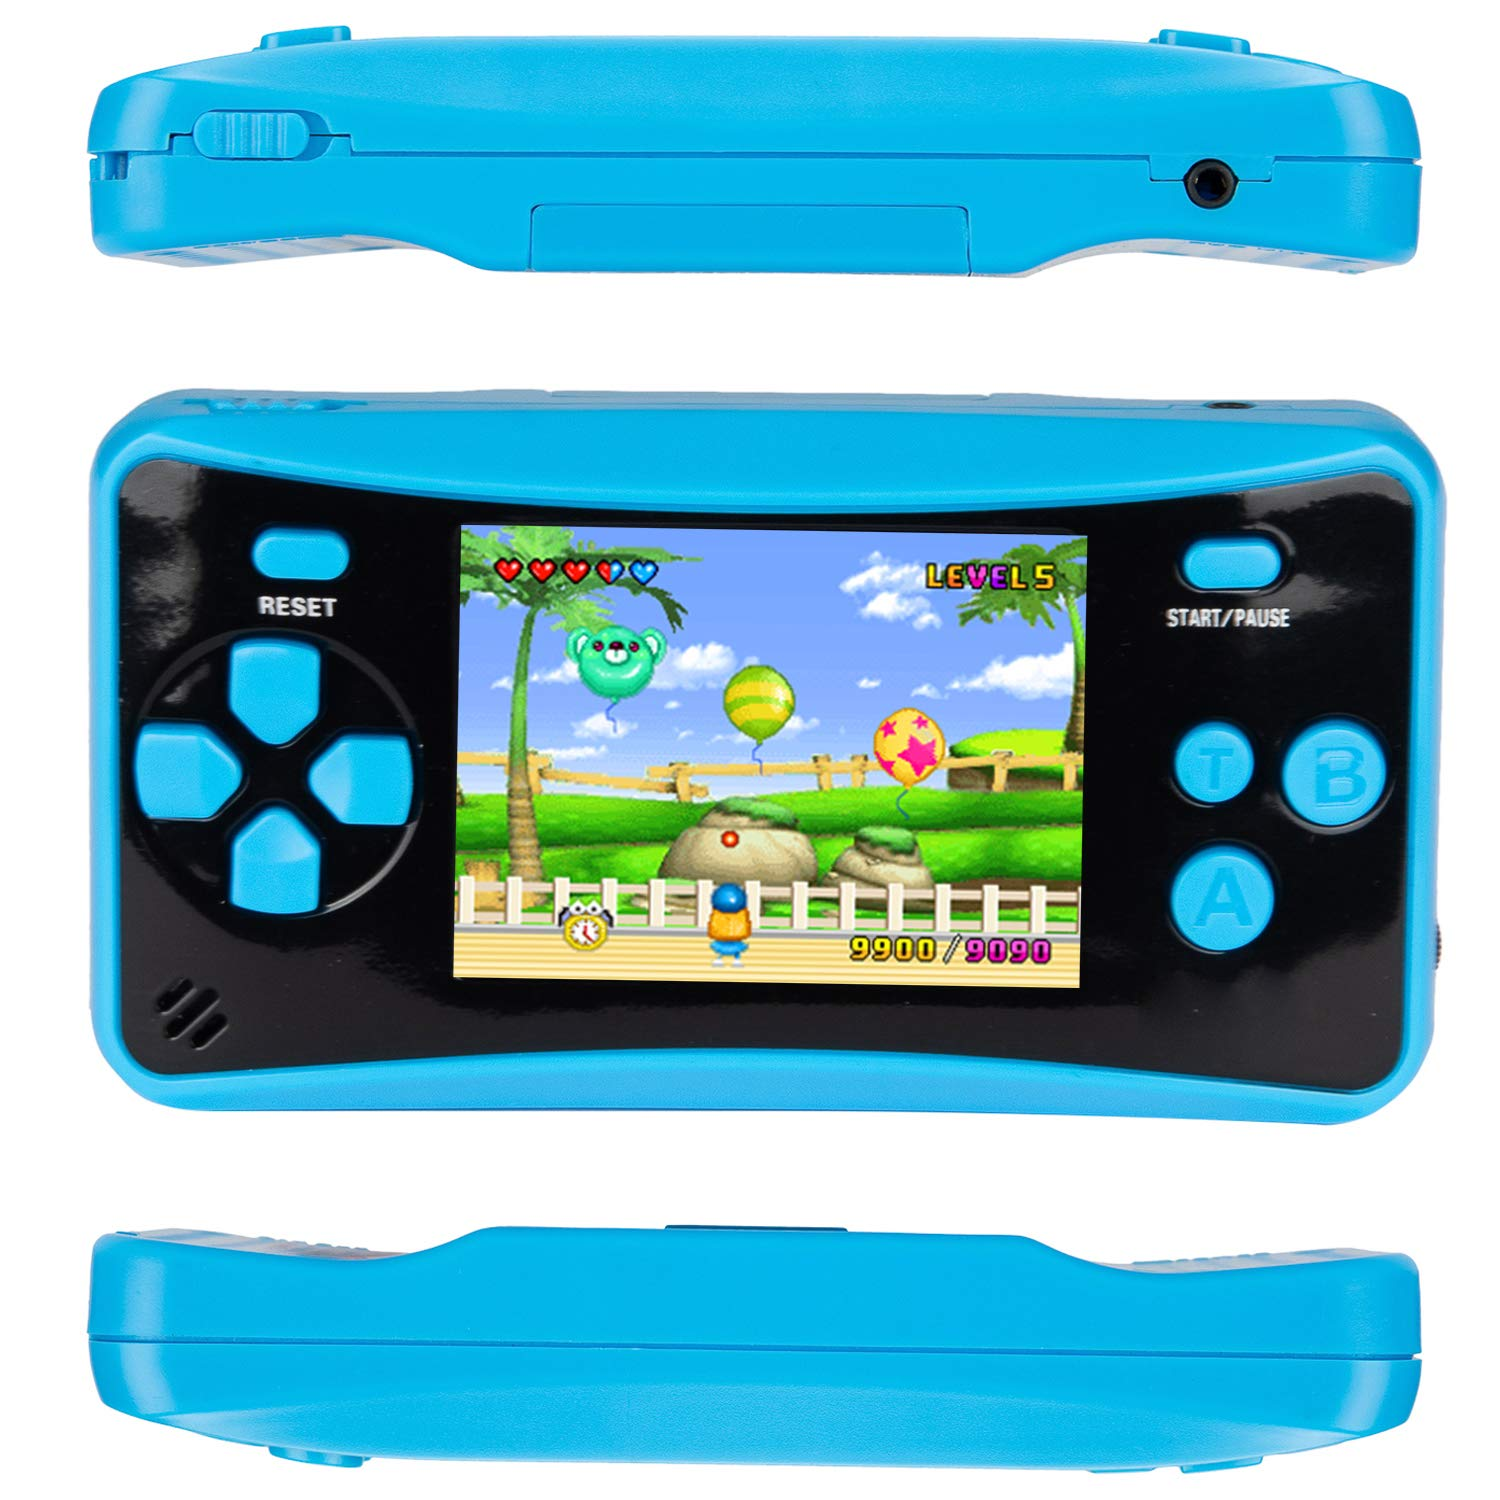 HigoKids Handheld Game Console for Kids Portable Retro Video Game Player Built-in 182 Classic Games 2.5 inches LCD Screen Family Recreation Arcade Gaming System Birthday Present for Children-Blue by HigoKids (Image #6)